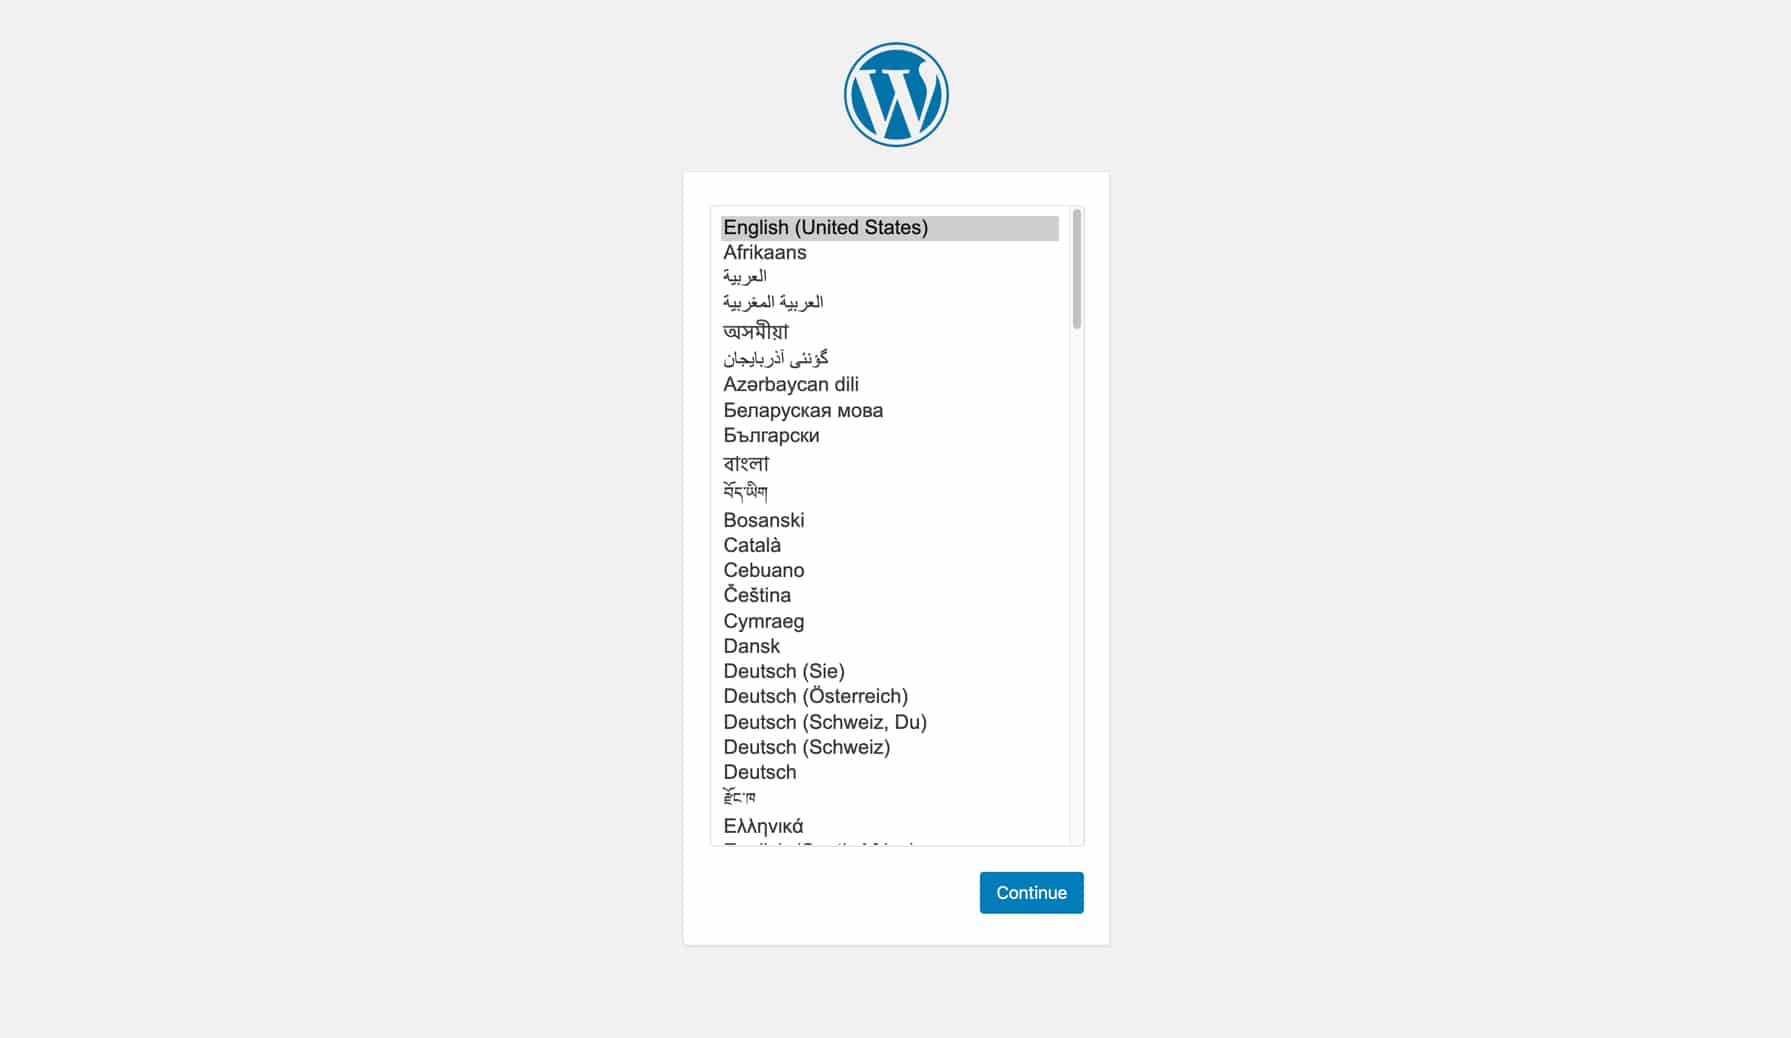 Configurer la nouvelle installation de WordPress.